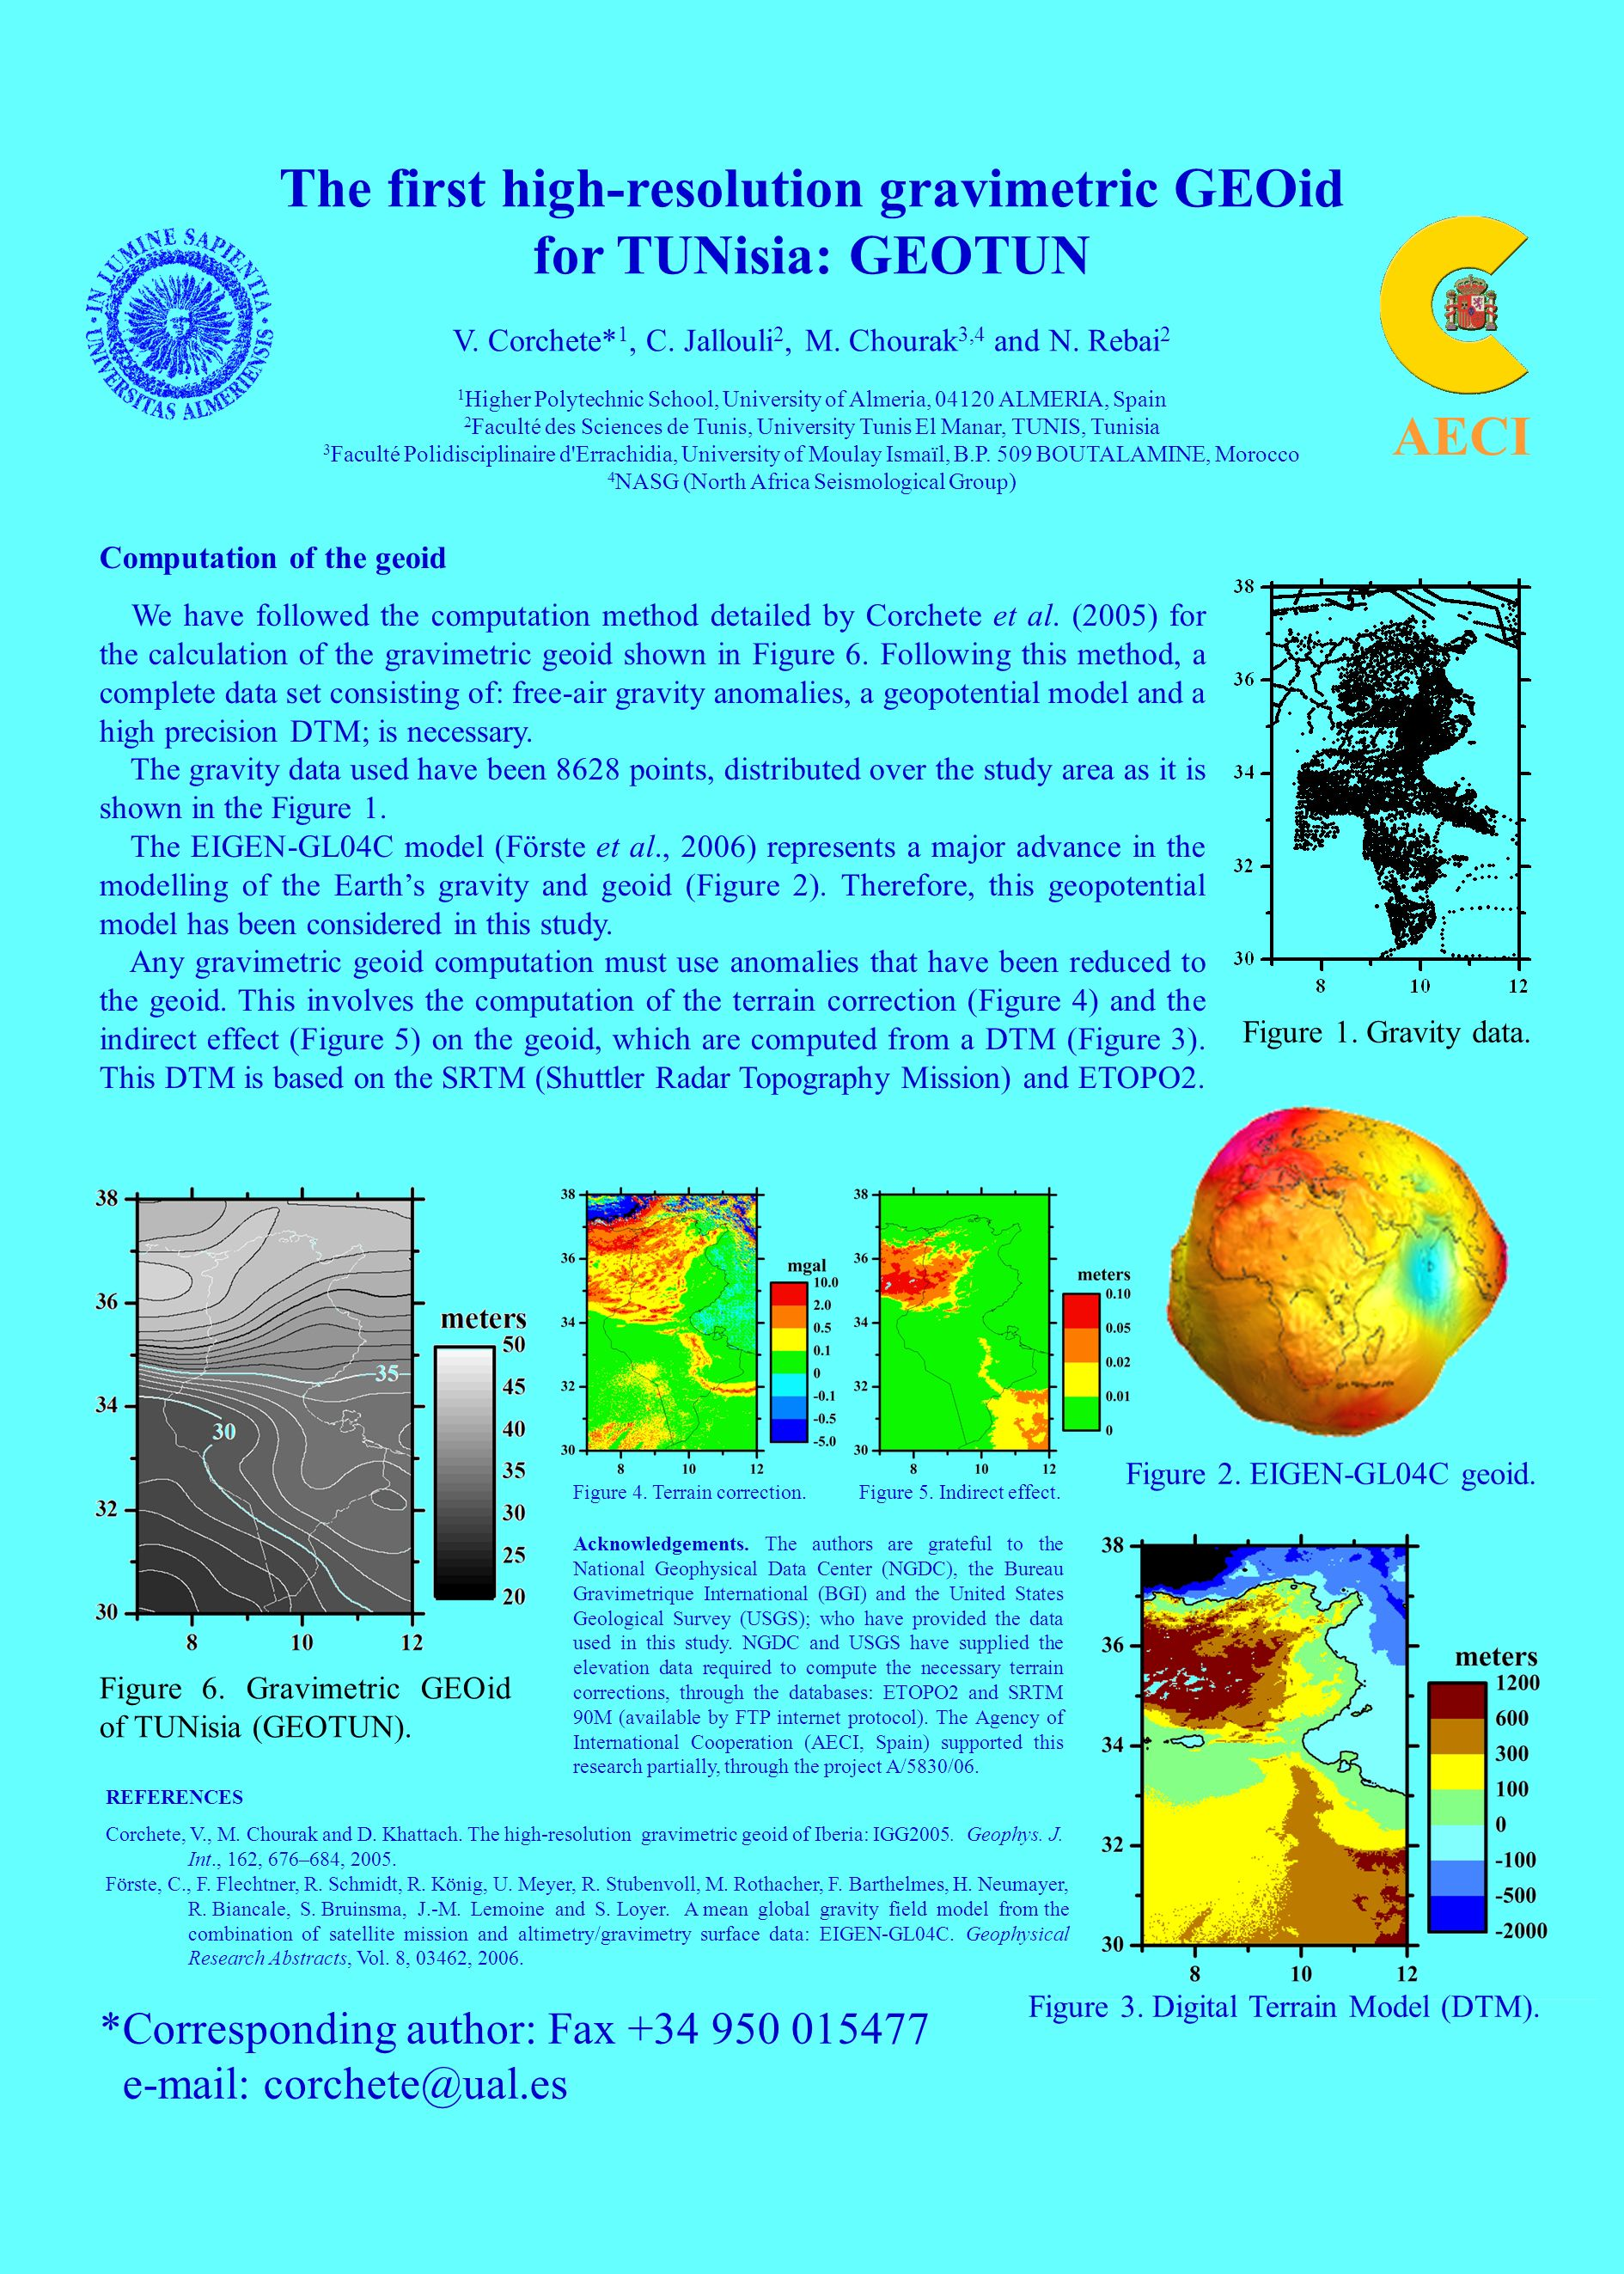 The first high-resolution gravimetric GEOid